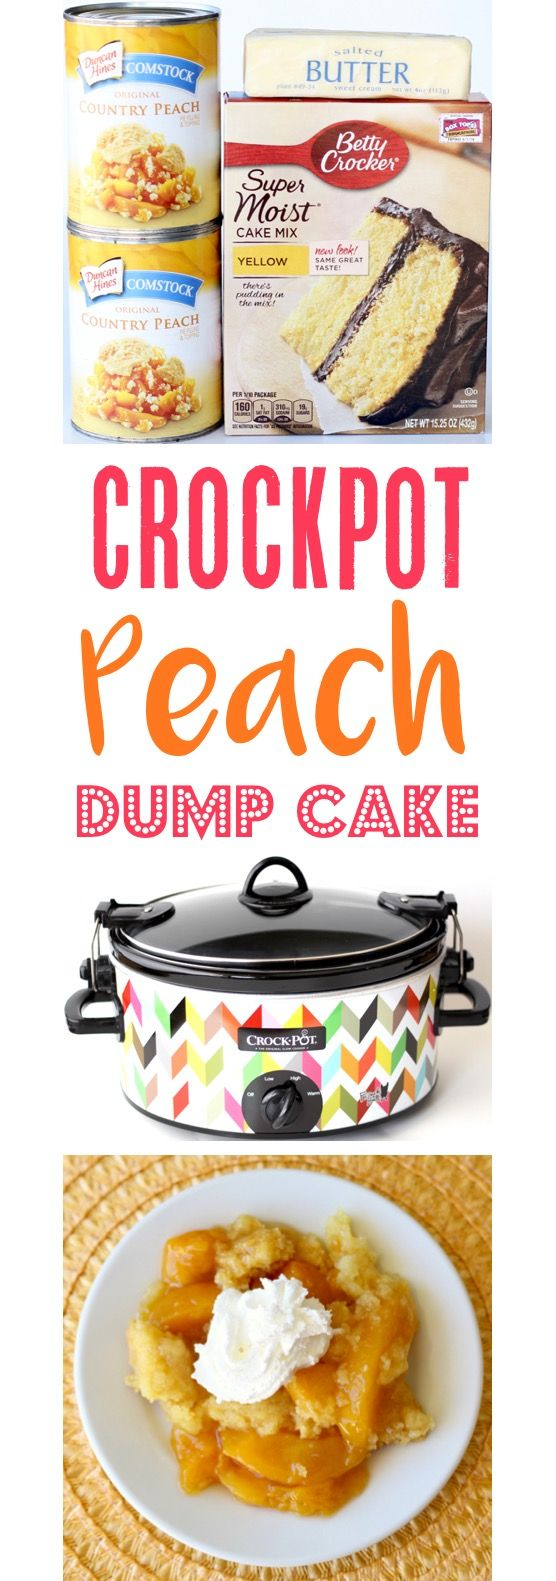 Peach Dump Cake Crockpot Recipe!  This EASY dessert is just 3 ingredients, and so simple using delicious pie filling and your slow cooker!  Always a hit with family and friends! | TheFrugalGirls.com